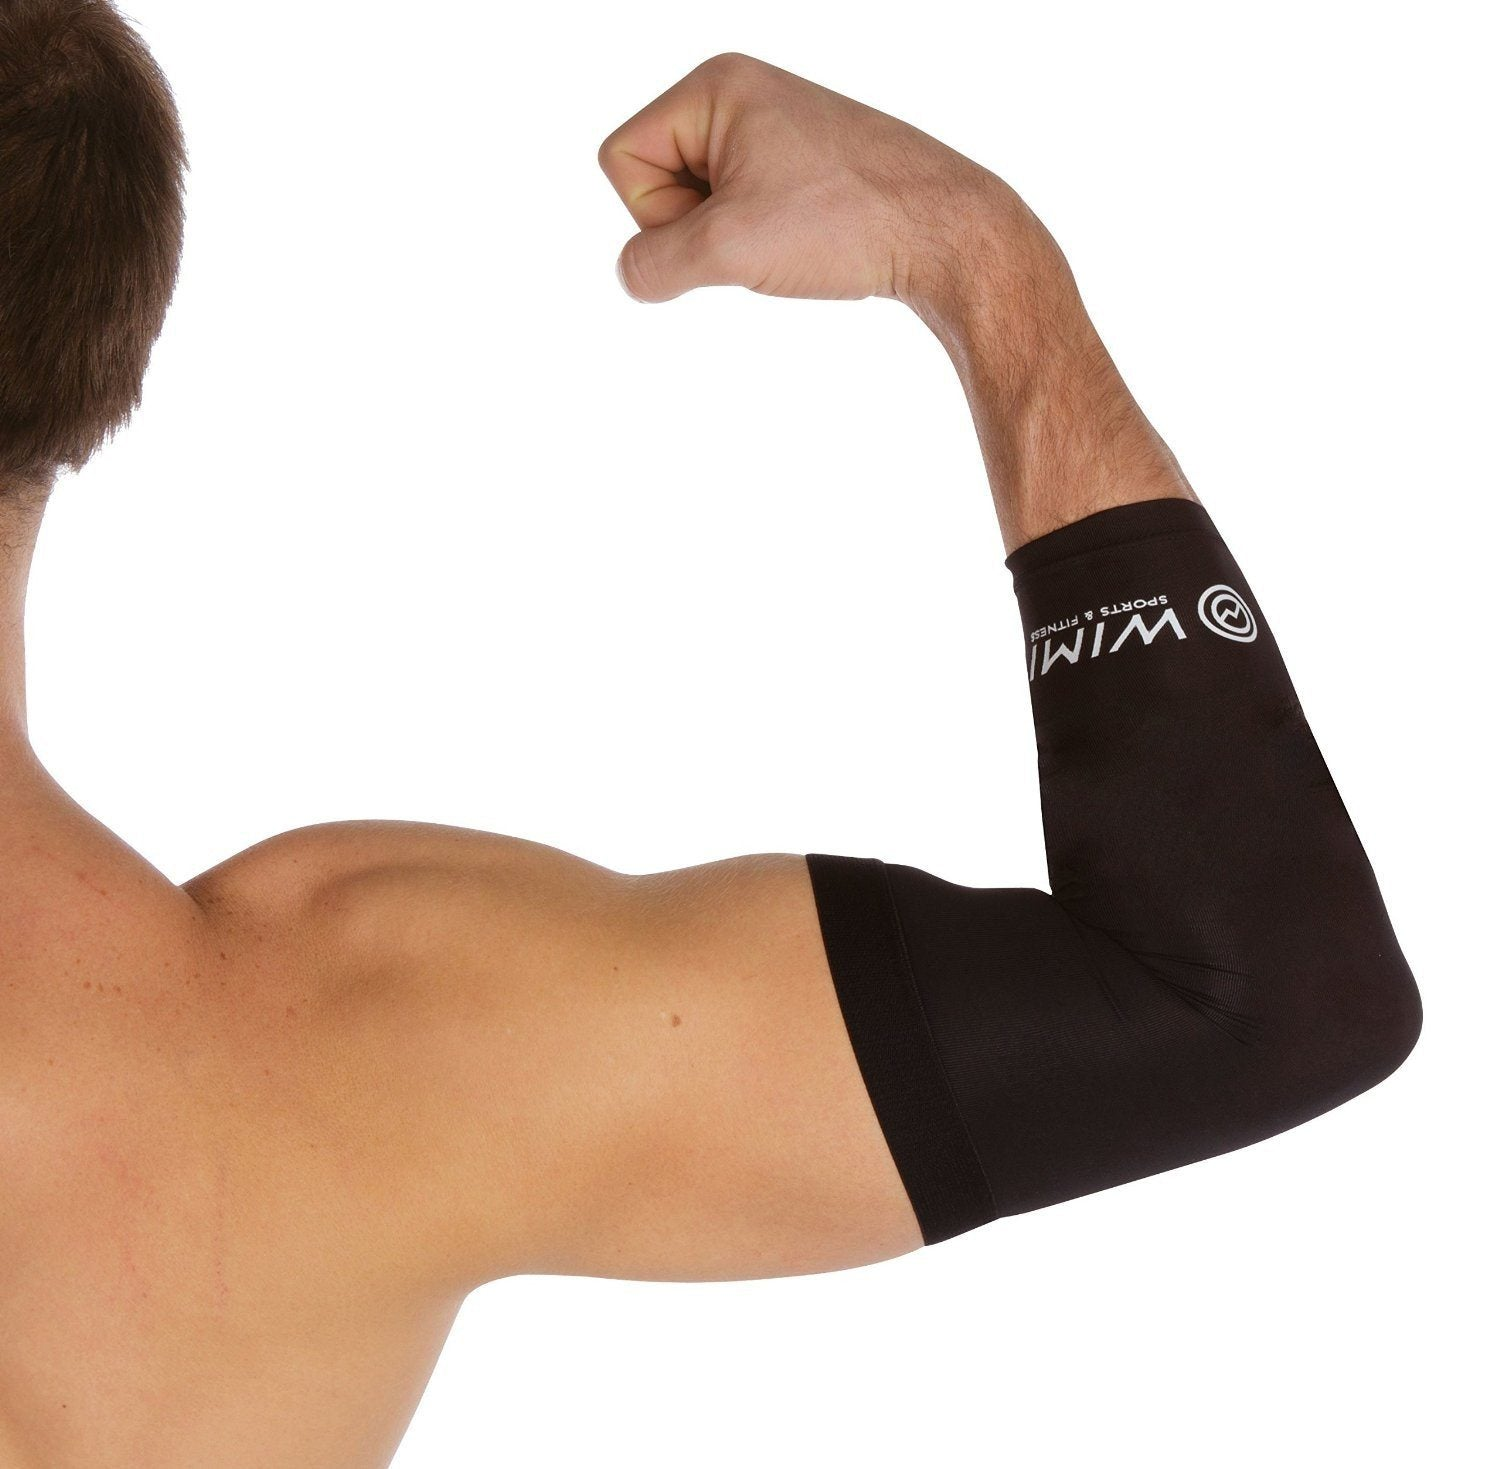 Tennis Elbow Sleeve